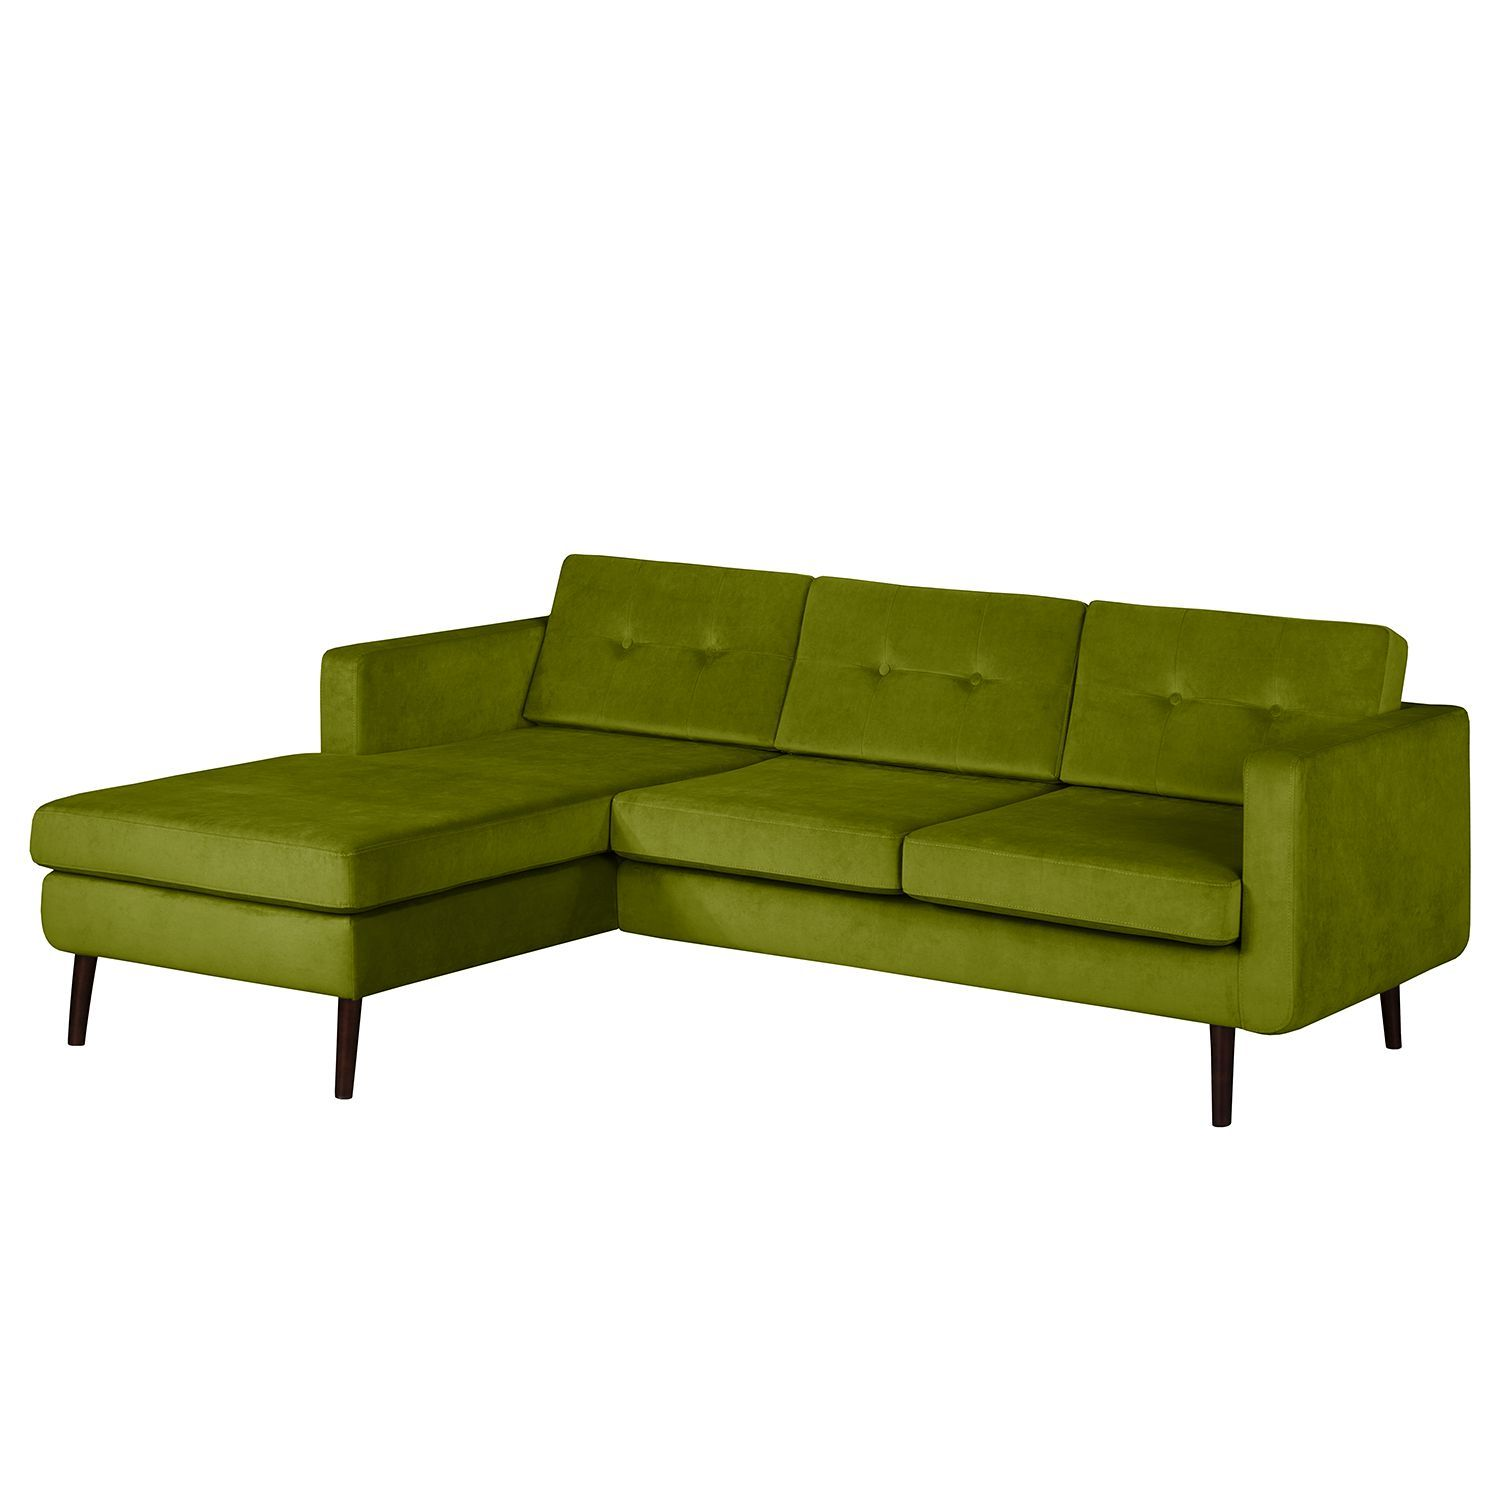 Ecksofa Croom Samt Ecksofas